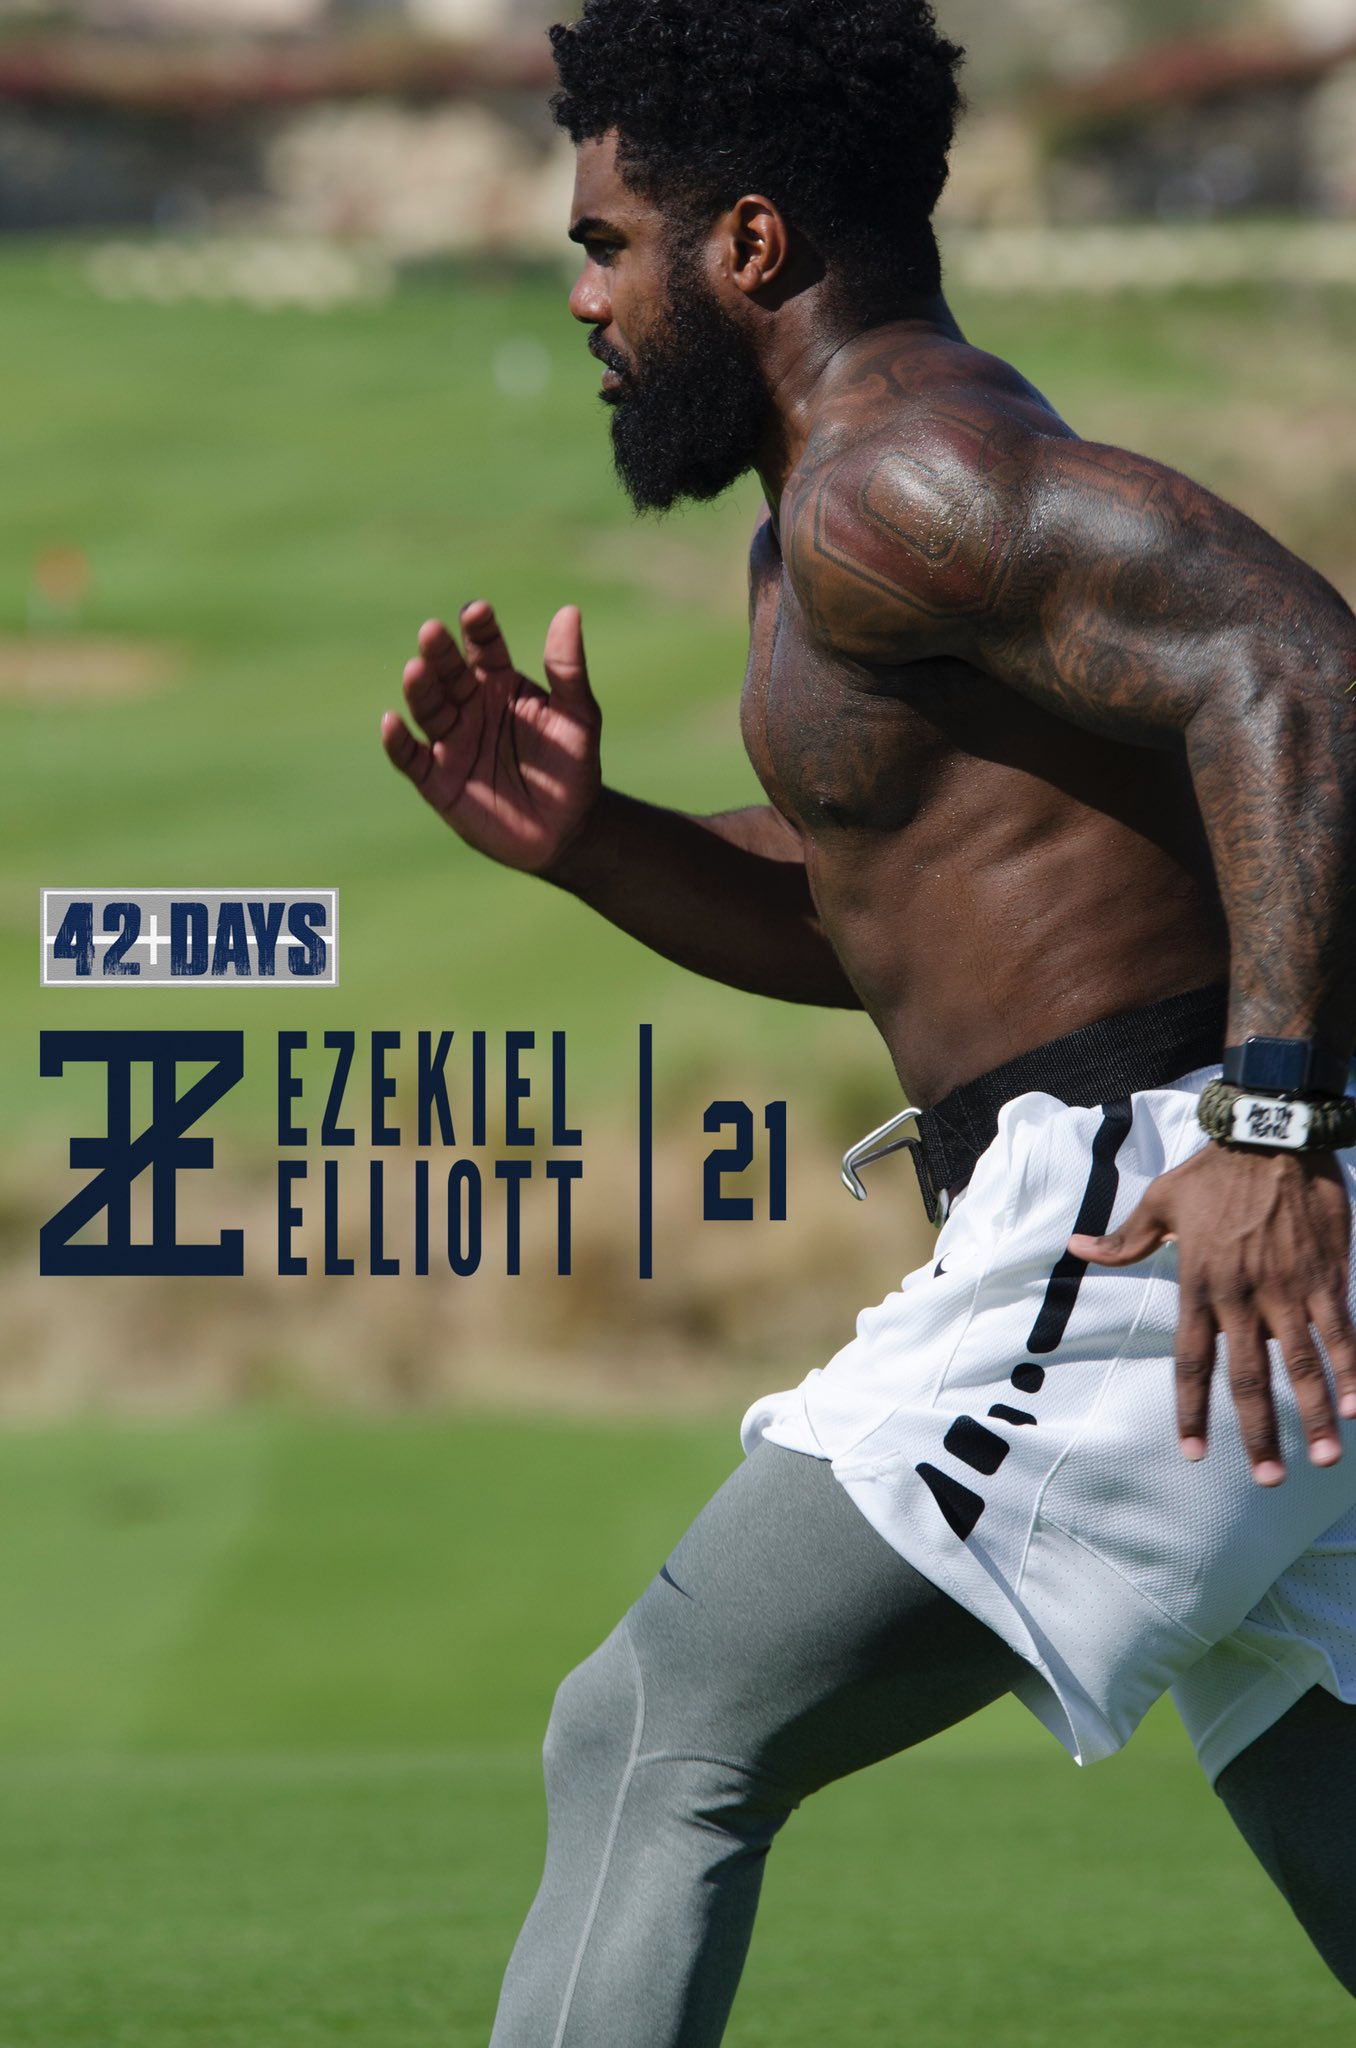 After 6 weeks of training thanks to a NFL-mandated suspension, this is what #Cowboys RB Zeke Elliott looks like now: https://t.co/7upcaegOyo